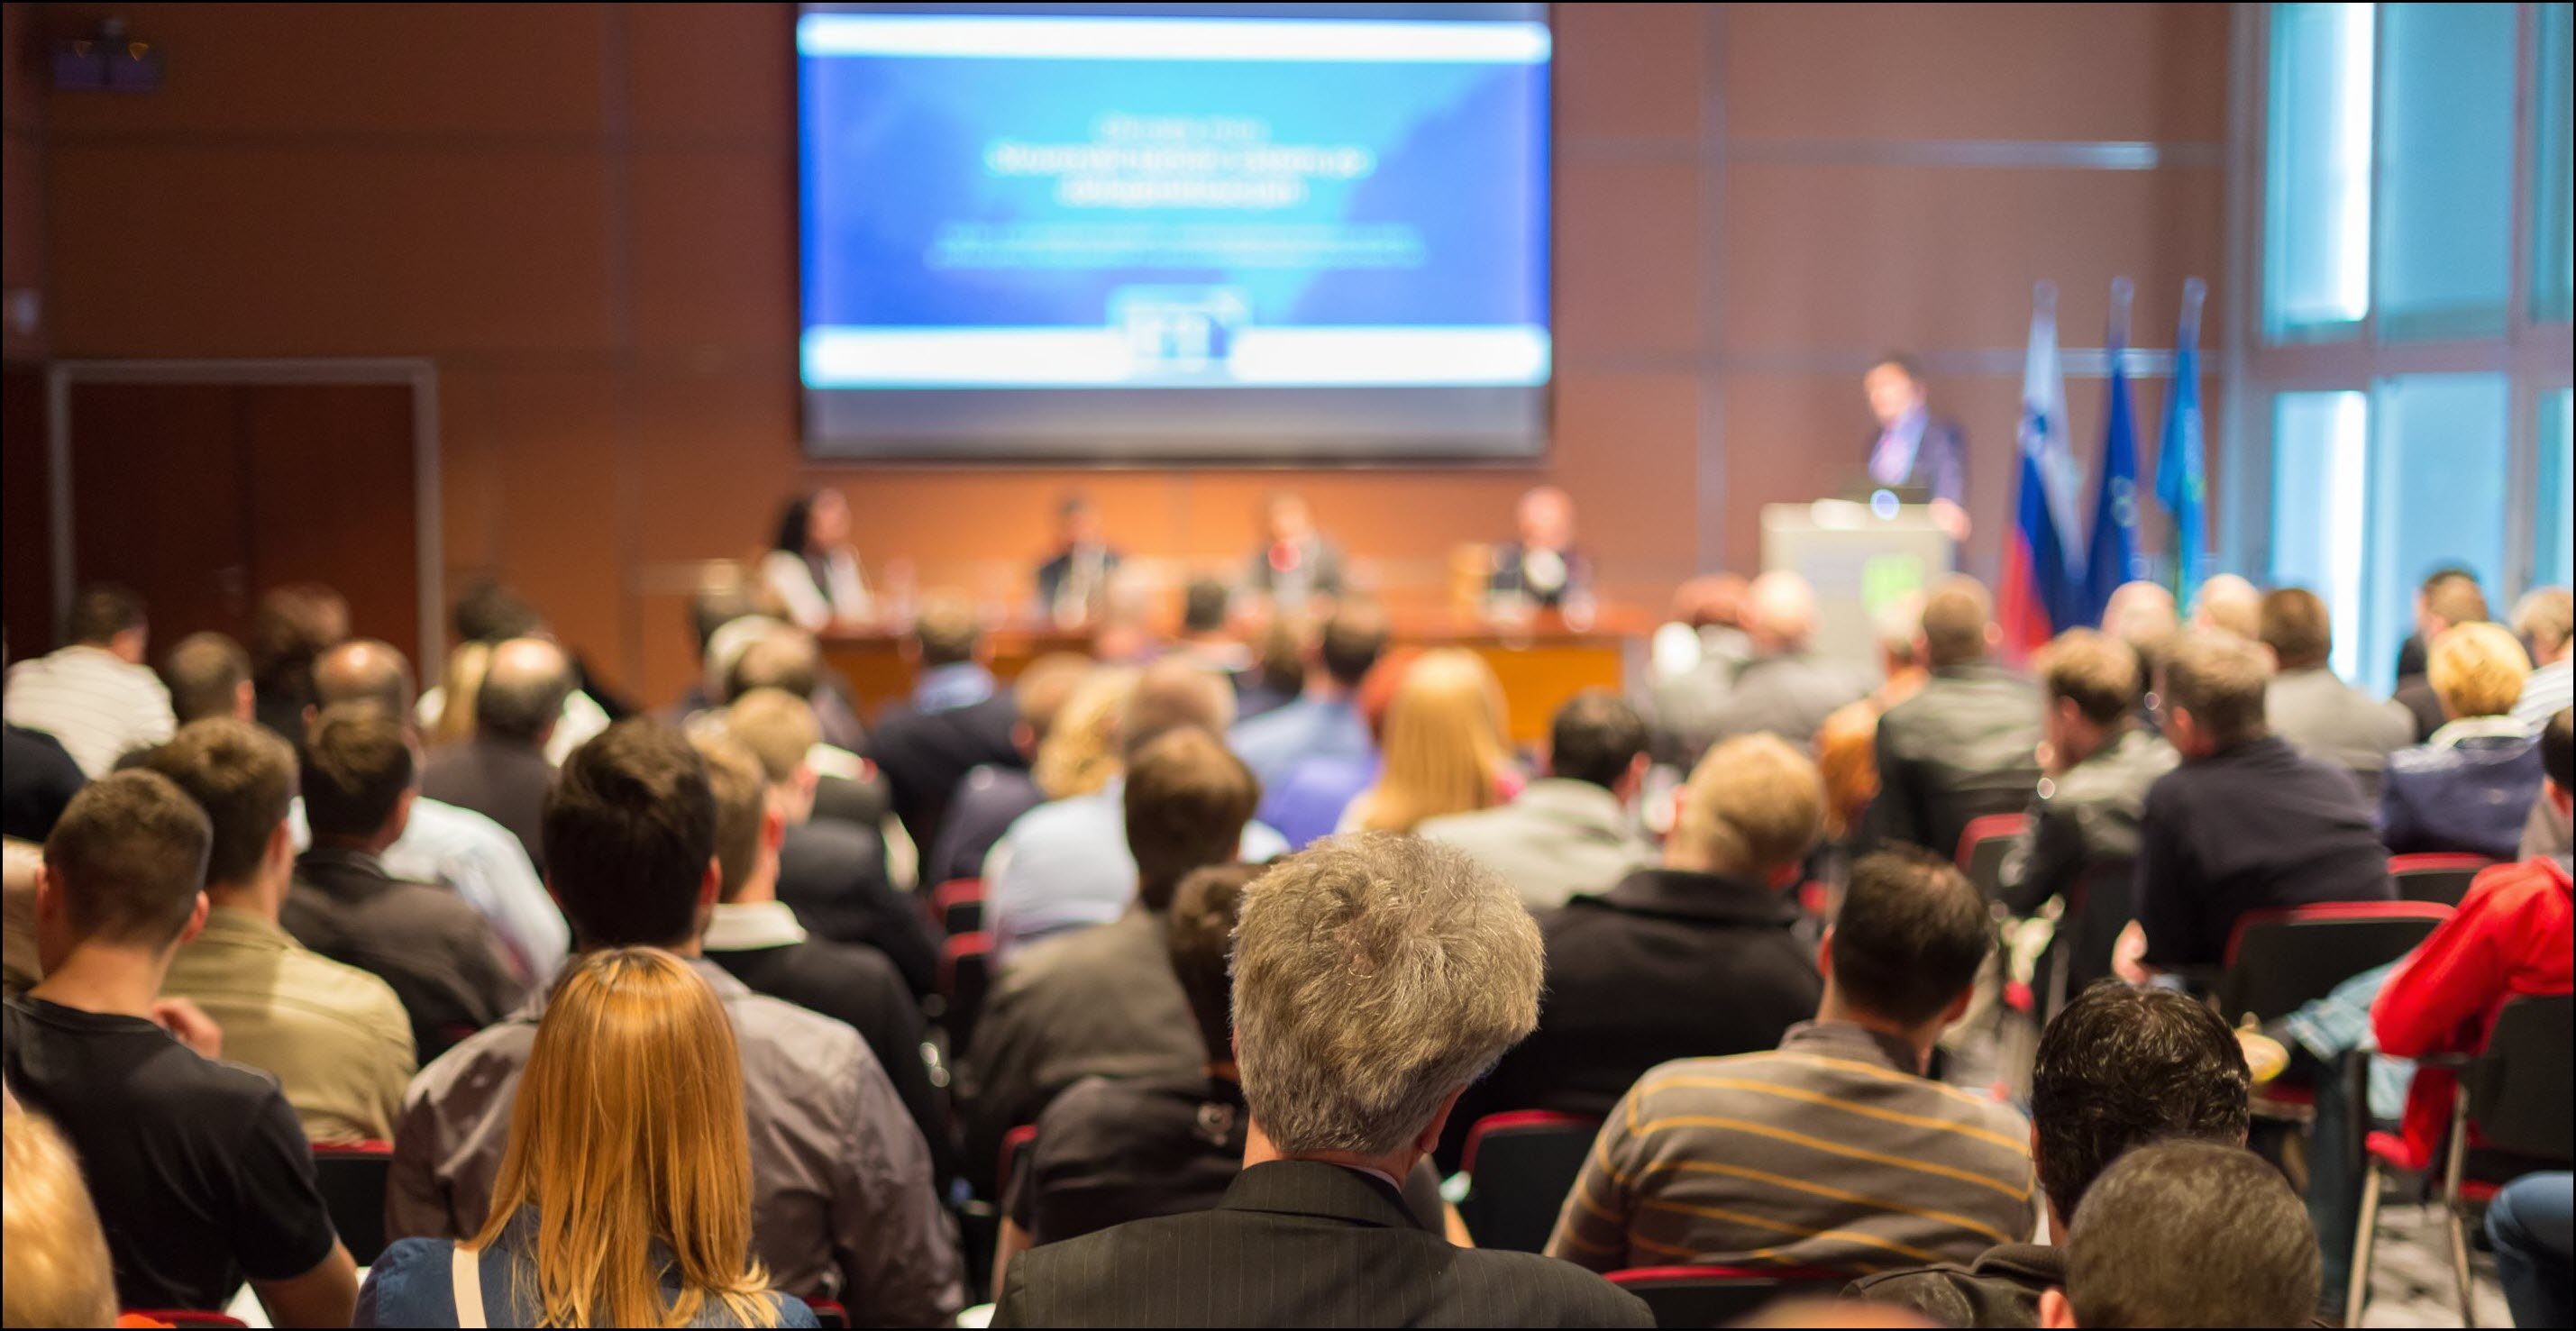 Business_Conference-1.jpg